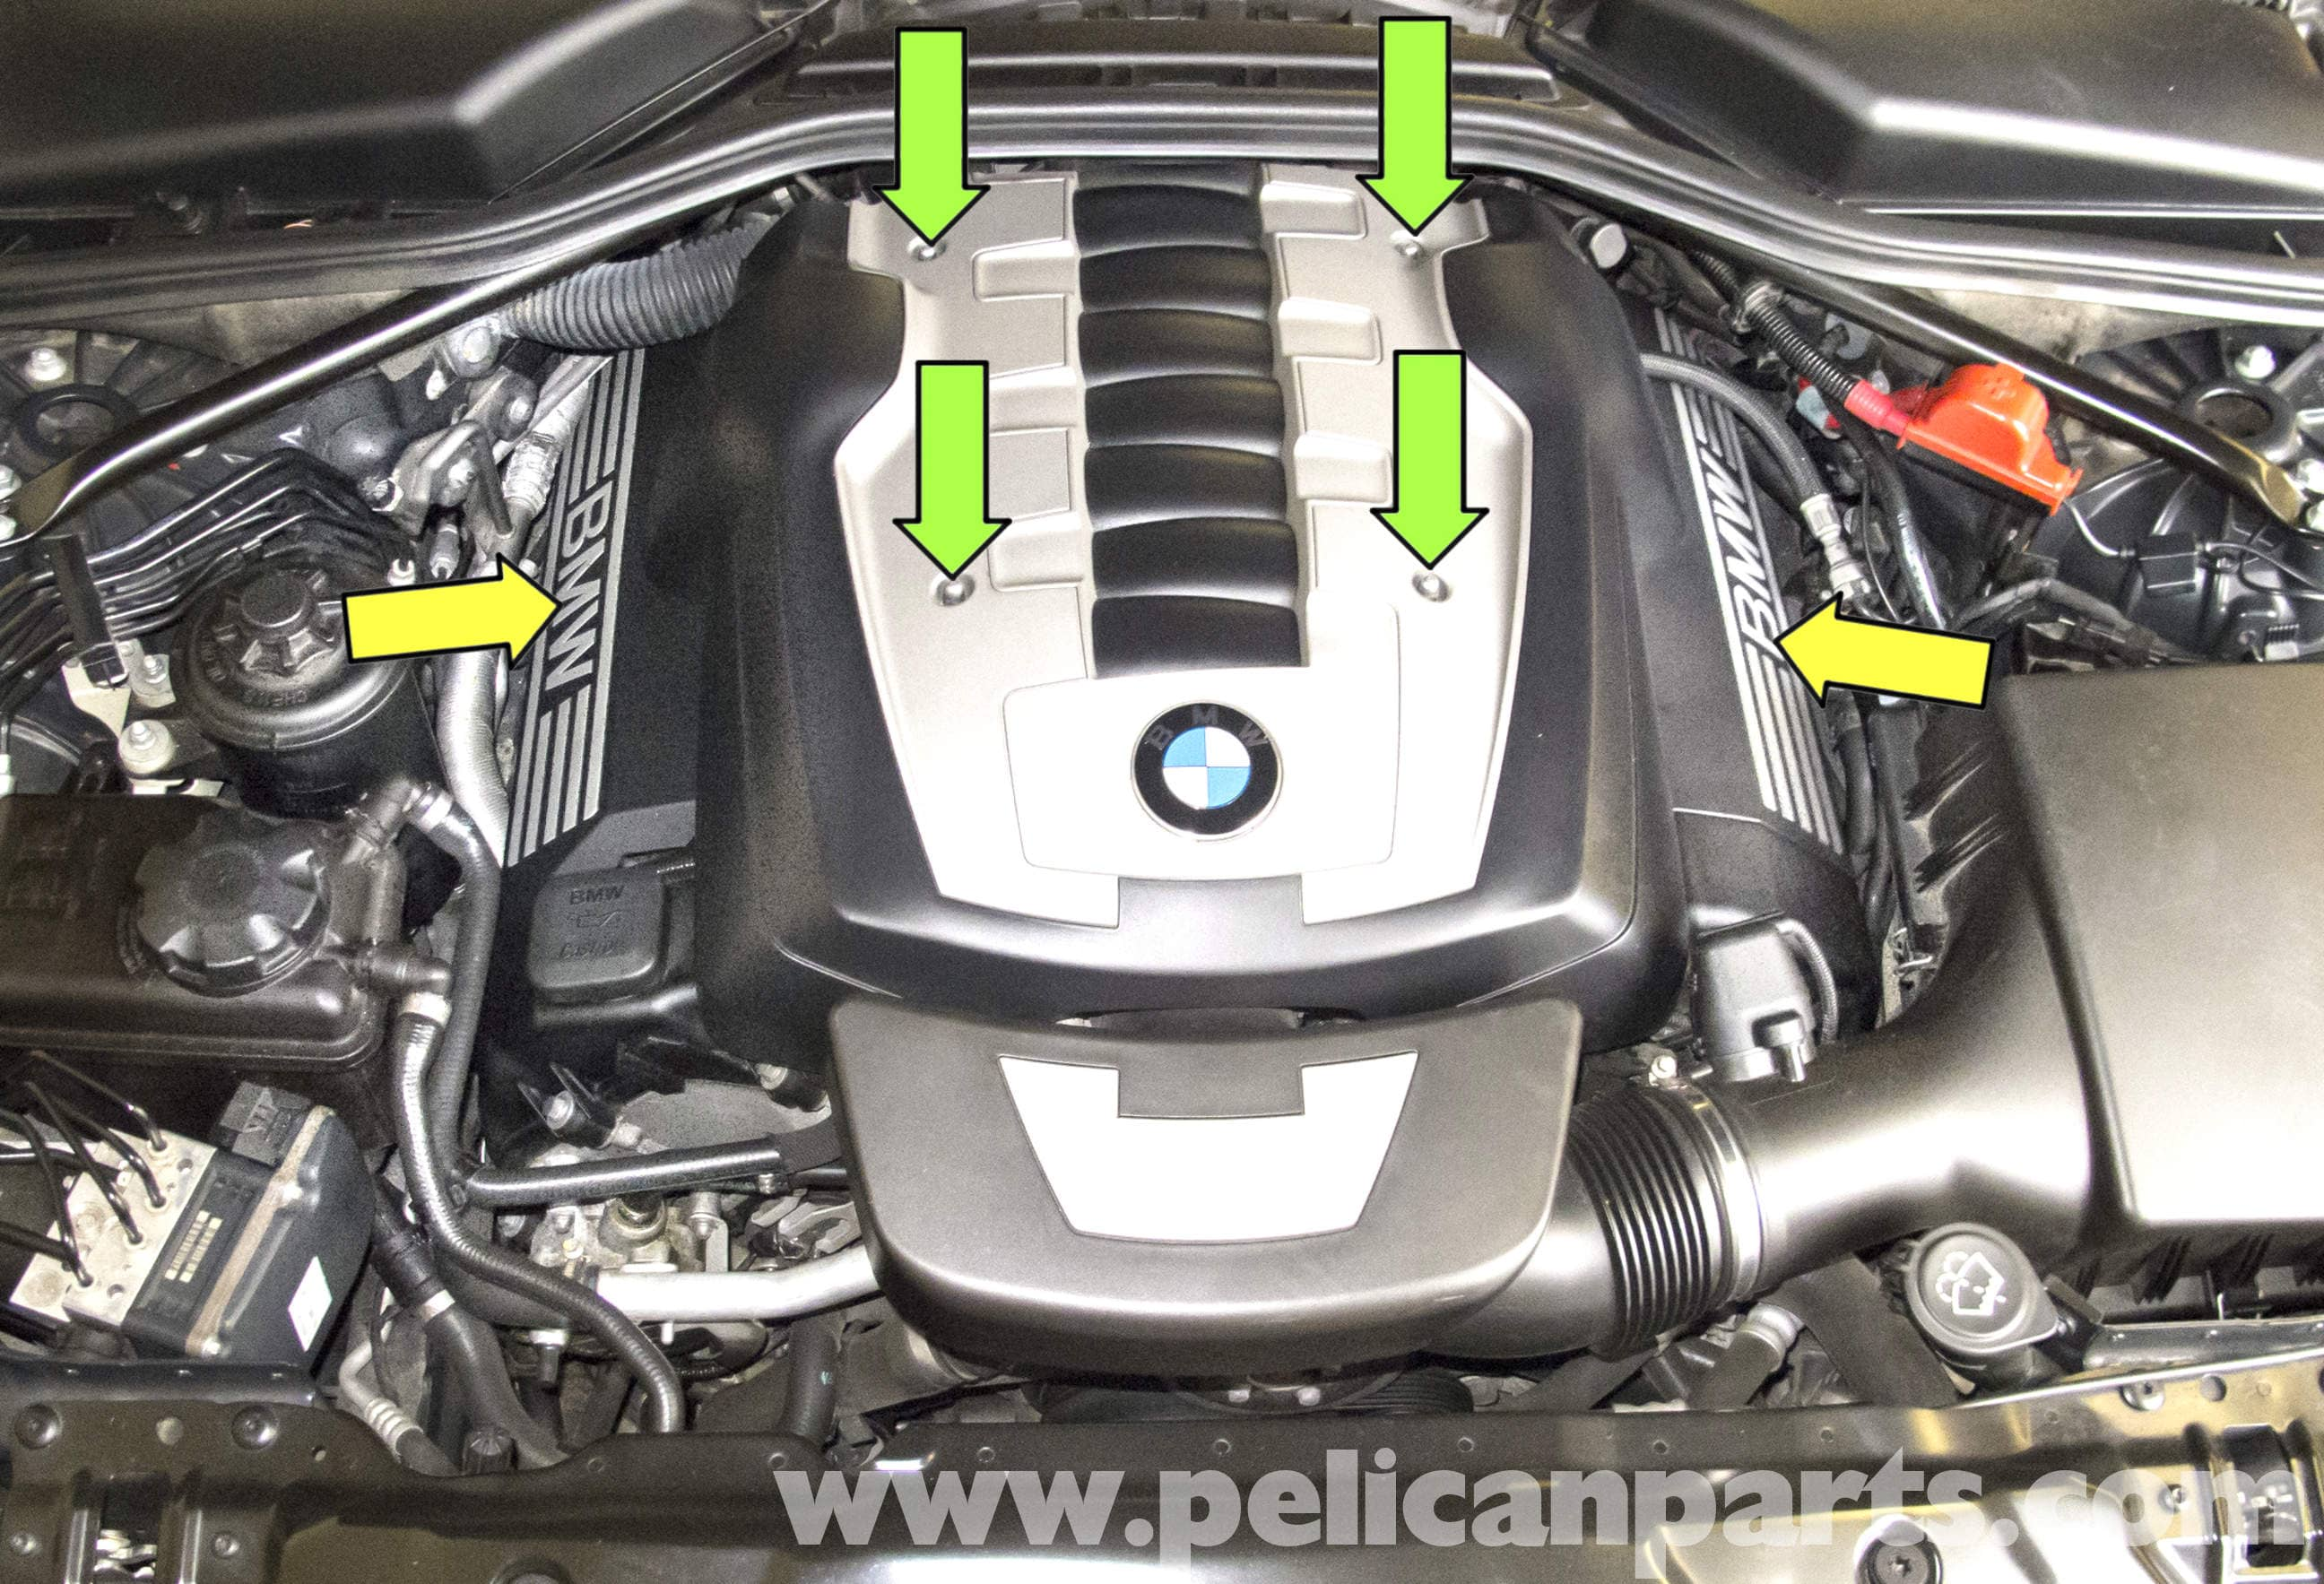 BMW E60 5-Series Engine Covers Removal (2003 - 2010